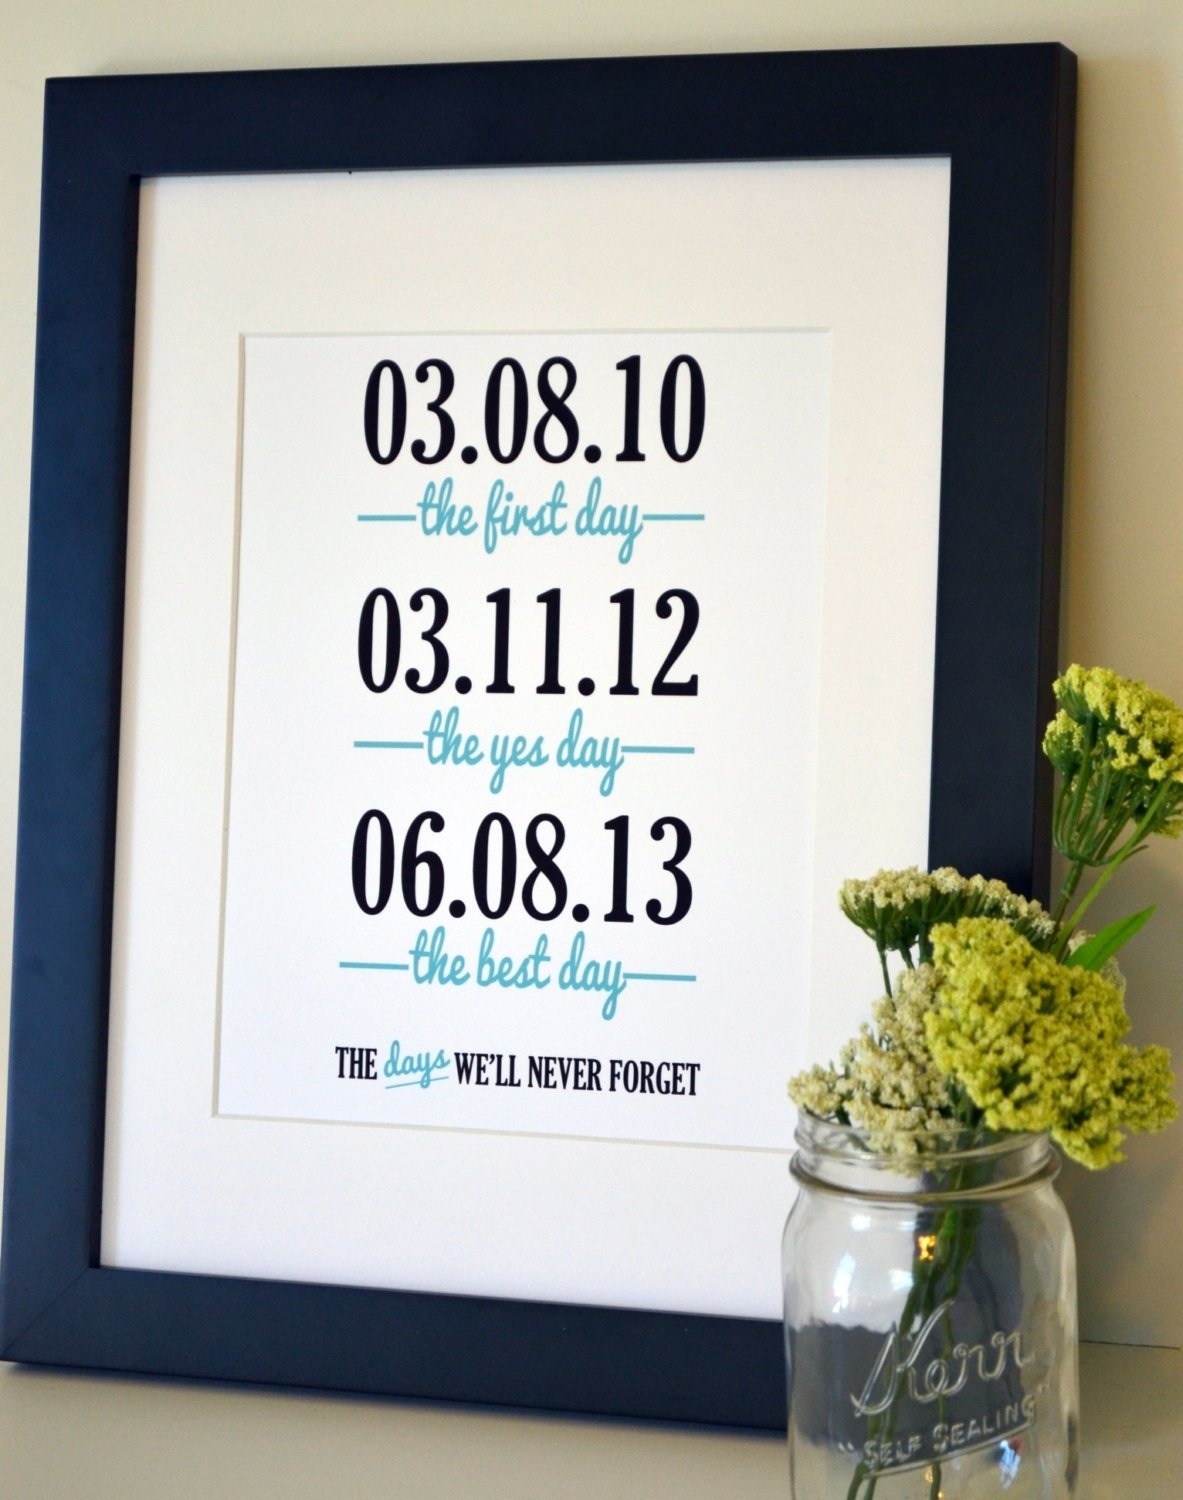 10 Famous Three Year Anniversary Gift Ideas For Him gifts design ideas wedding design best anniversary gift for men 2020